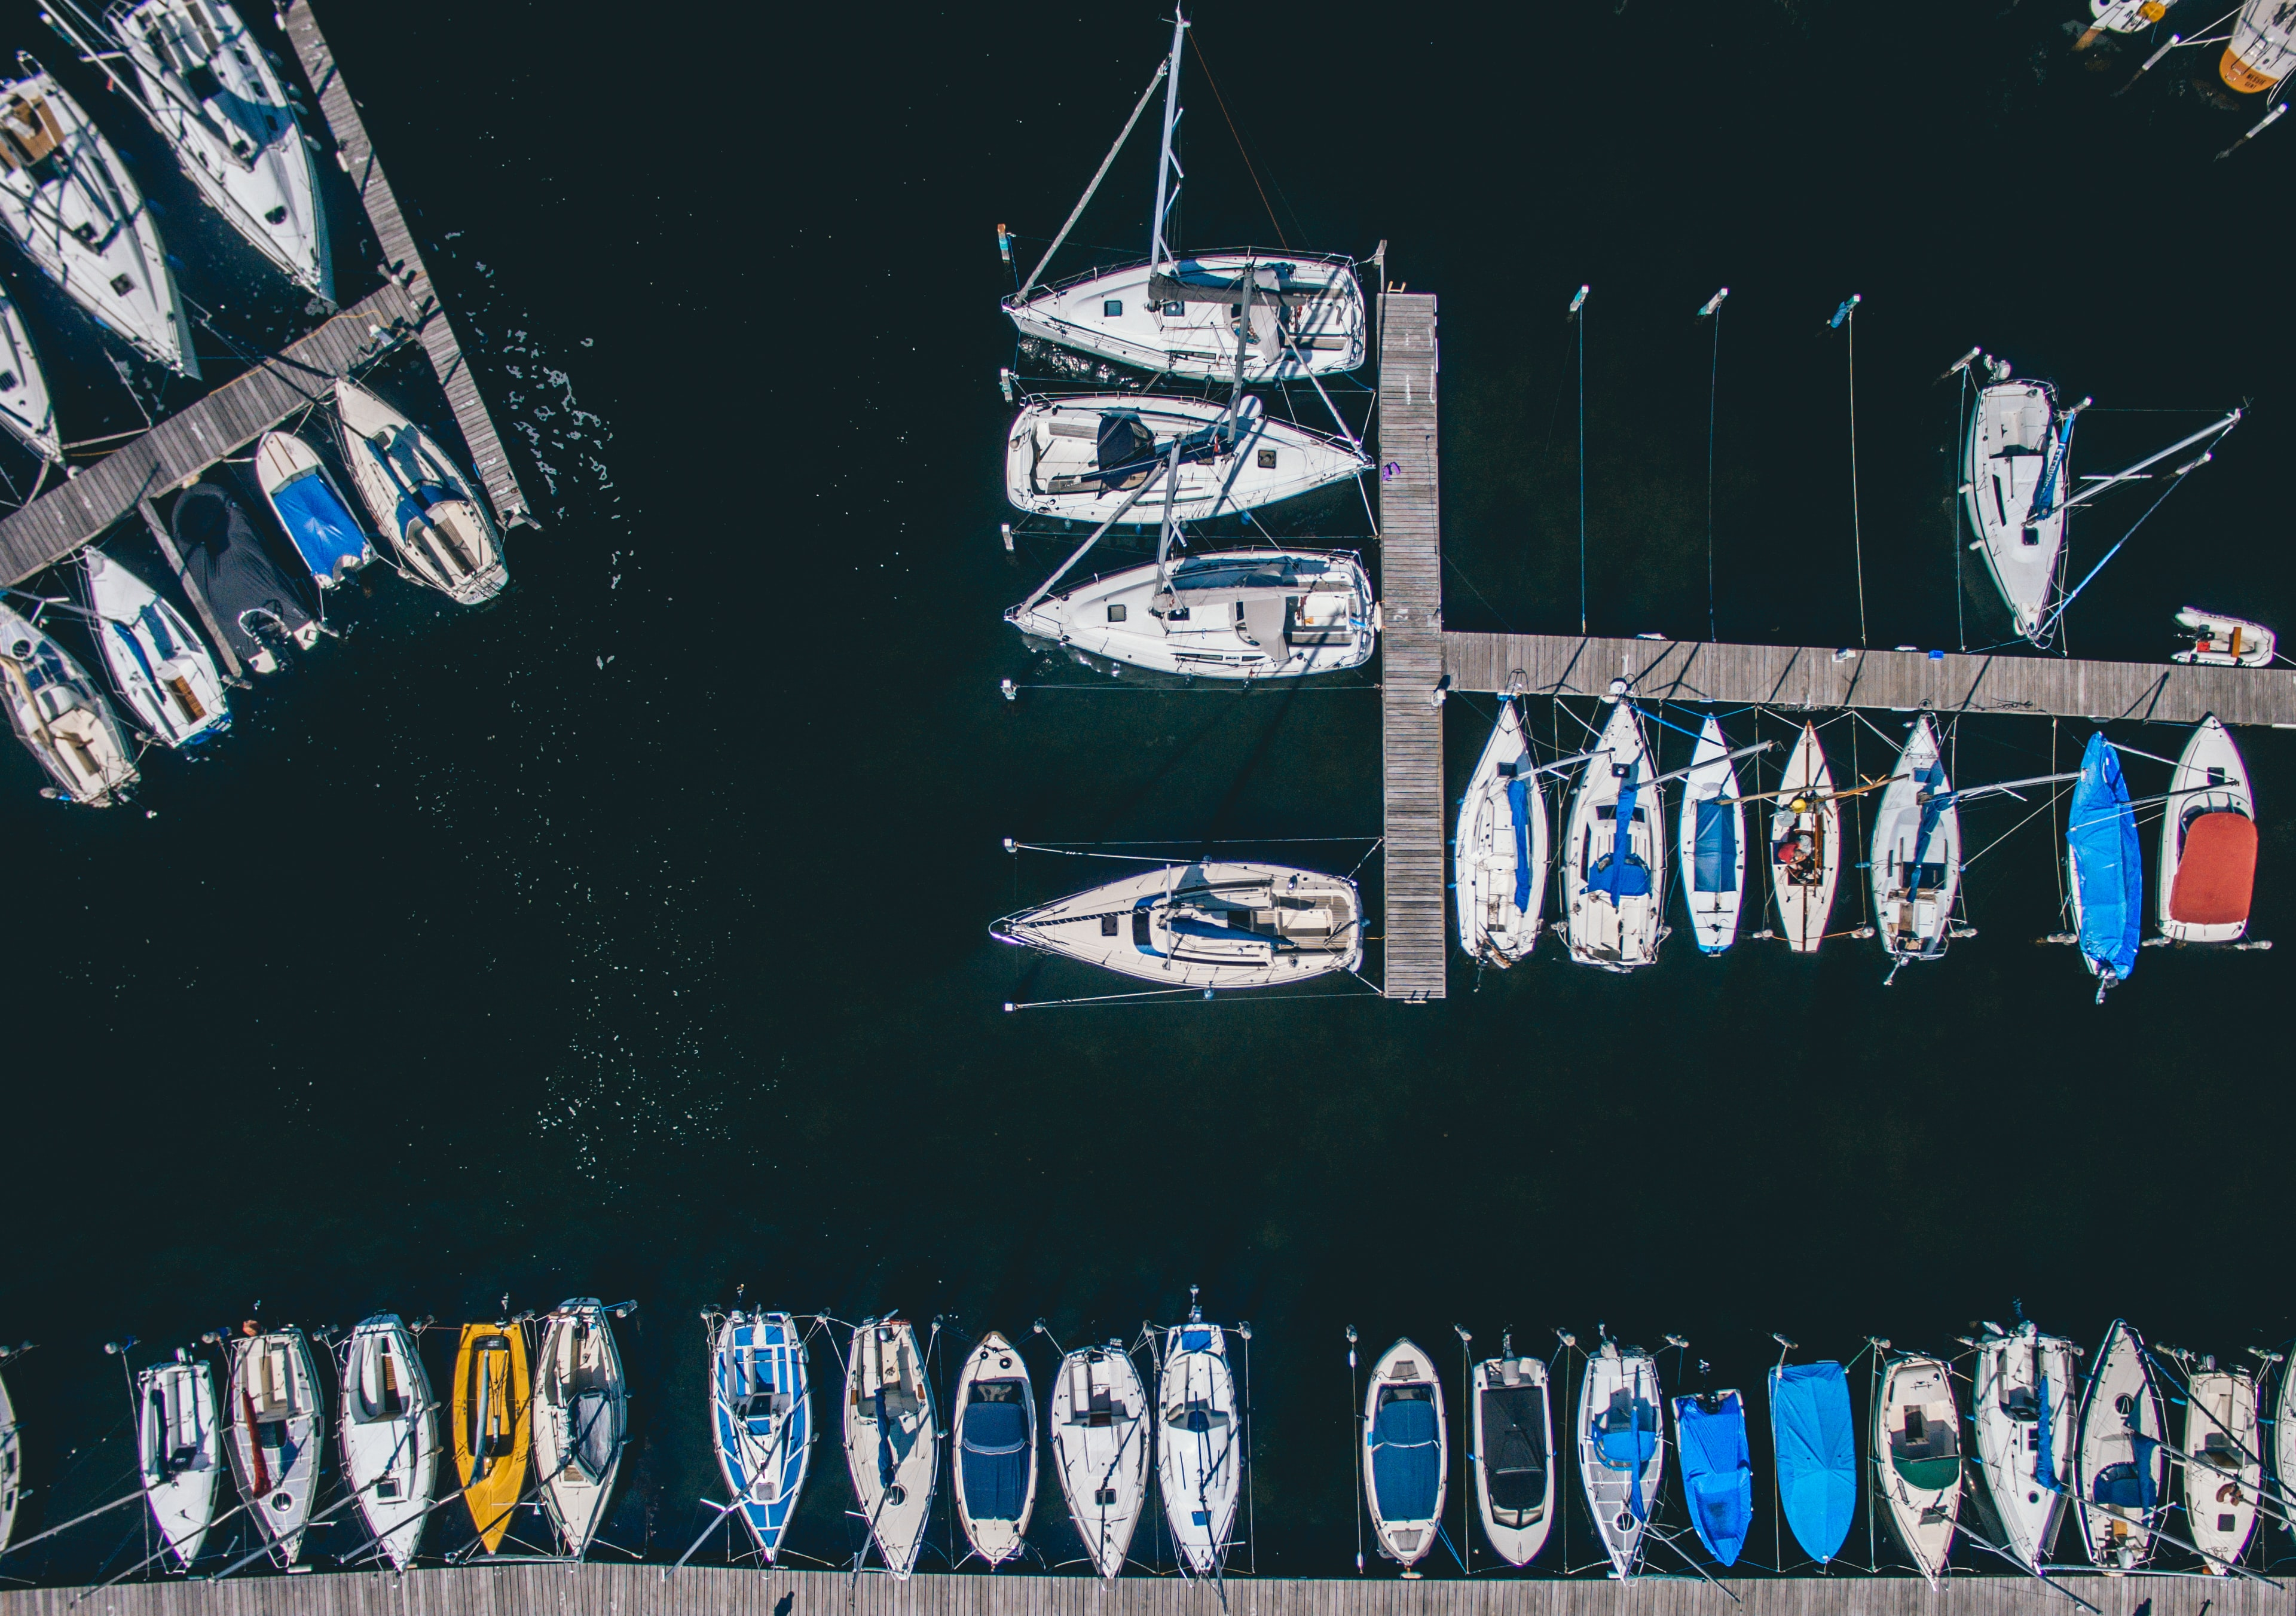 assorted boats on body of water